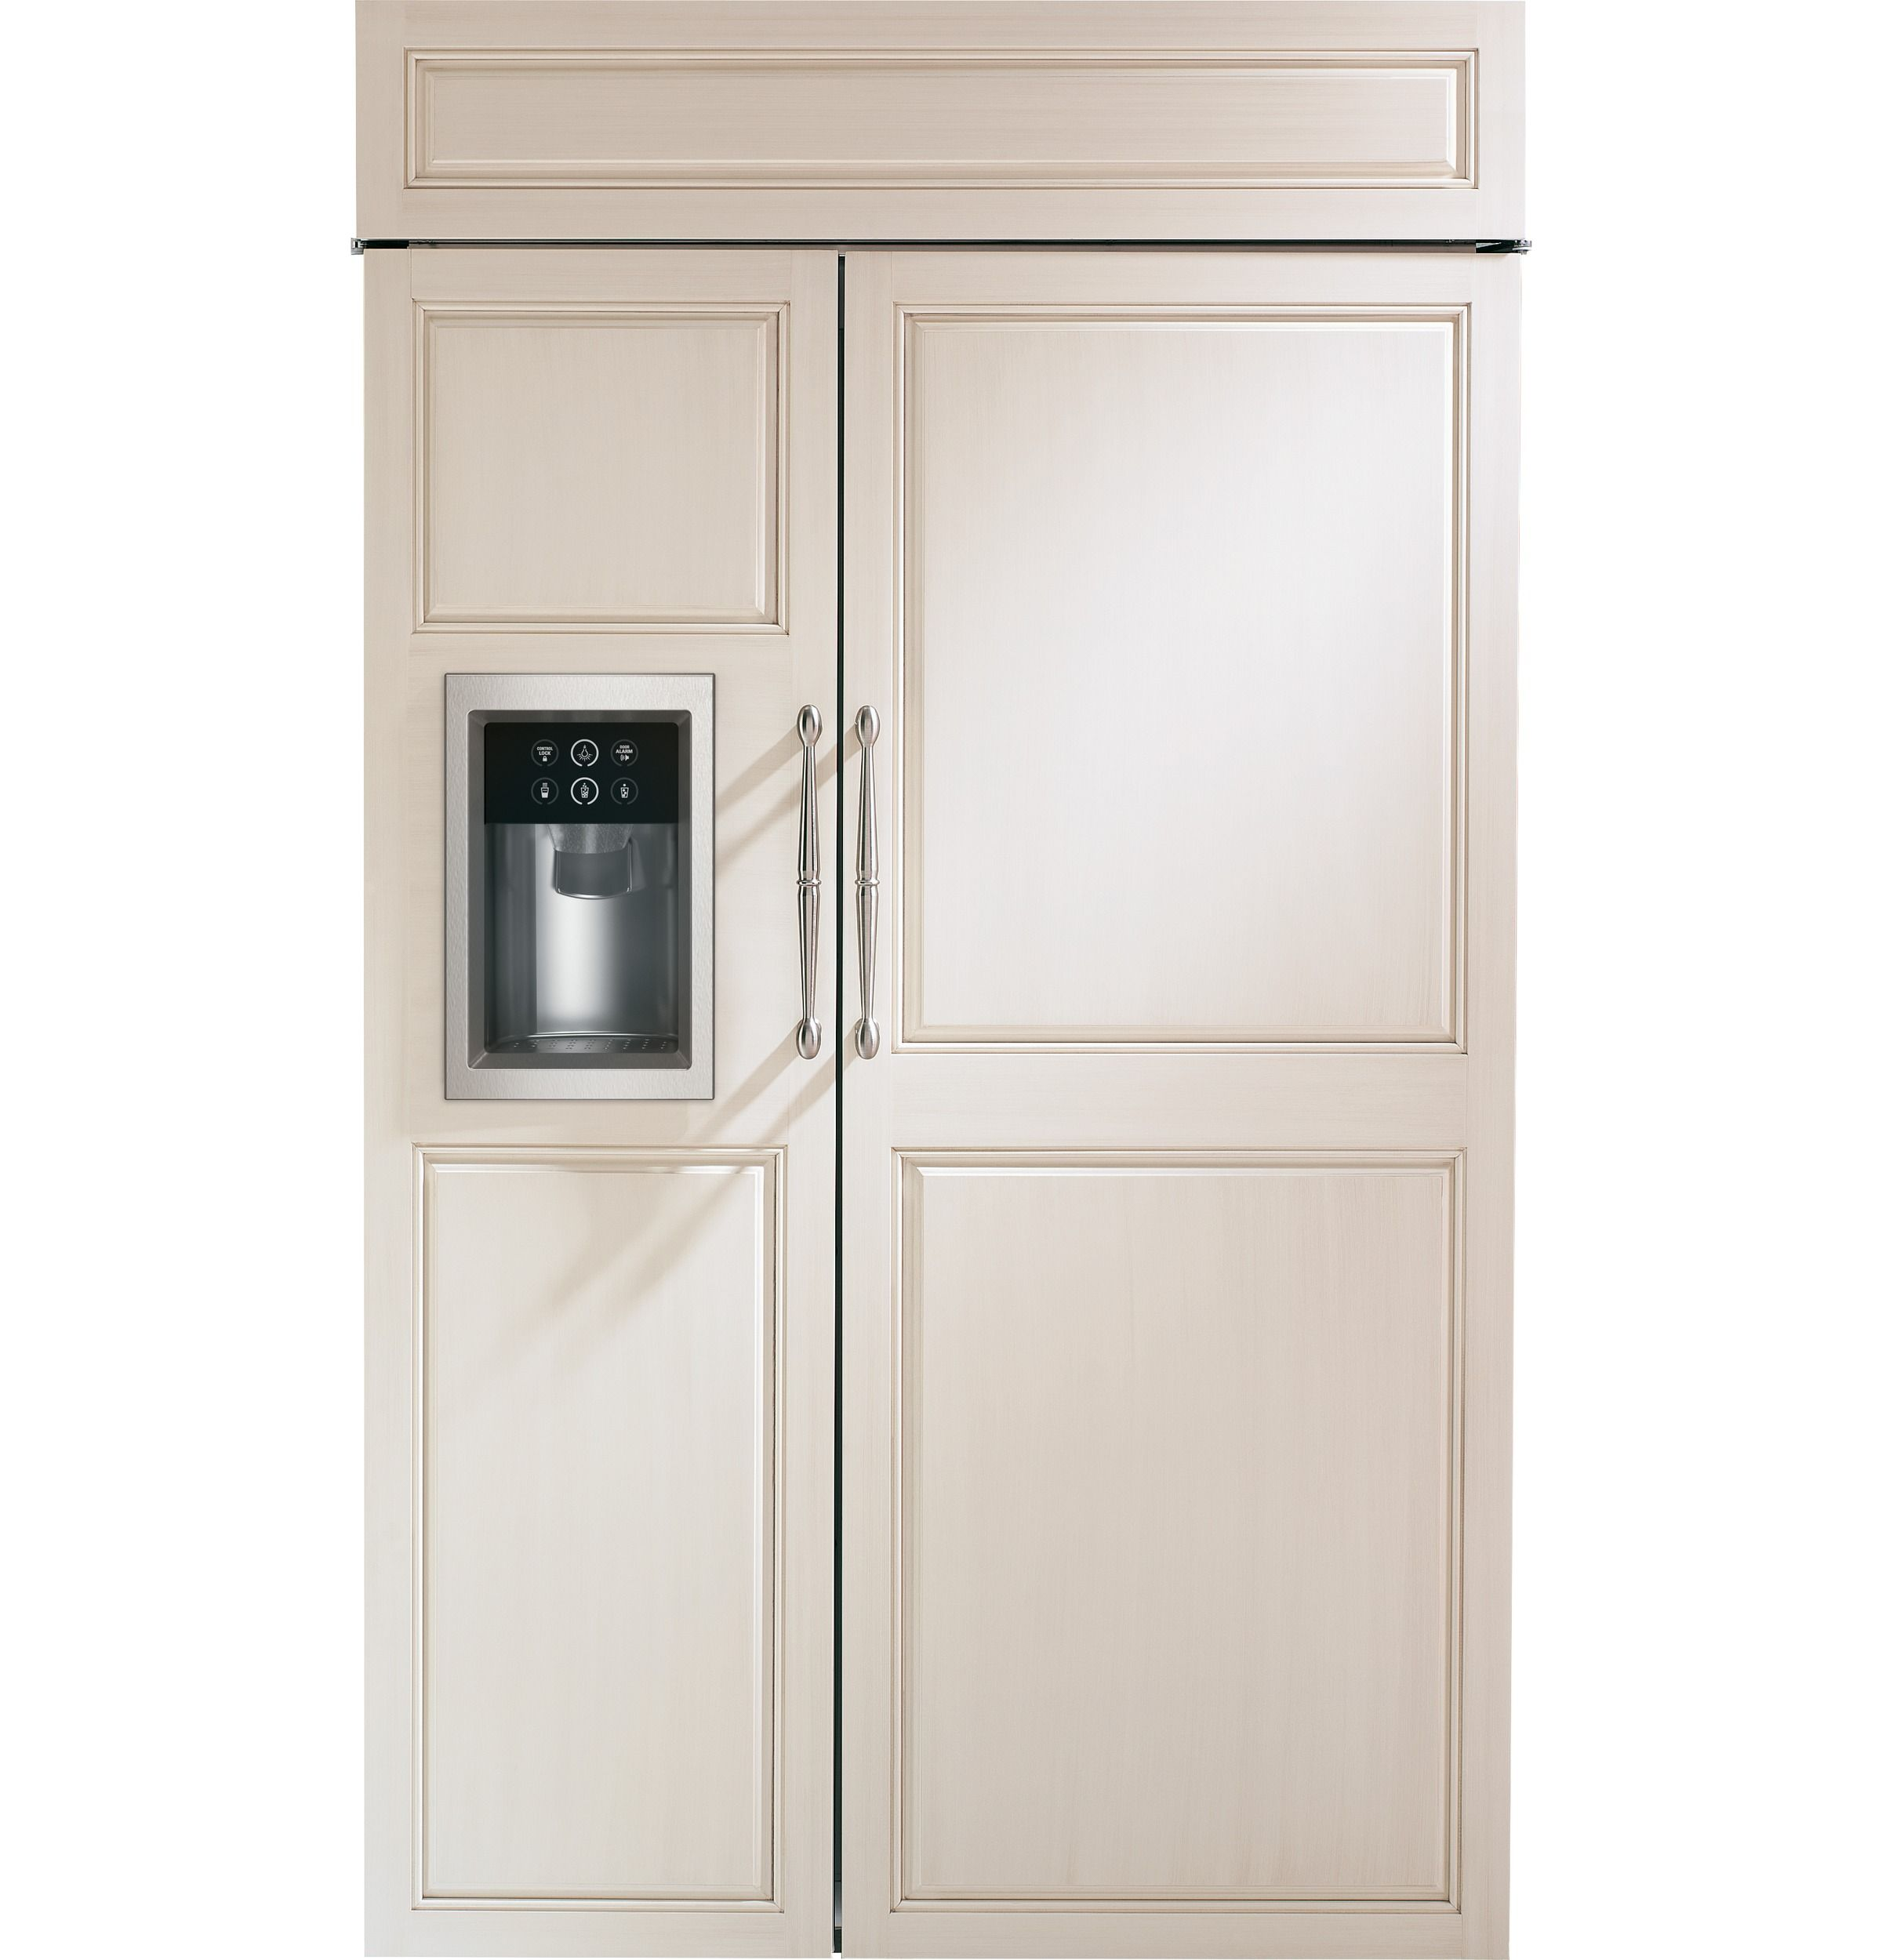 Zisb480dh Monogram 48 Built In Side By Refrigerator With